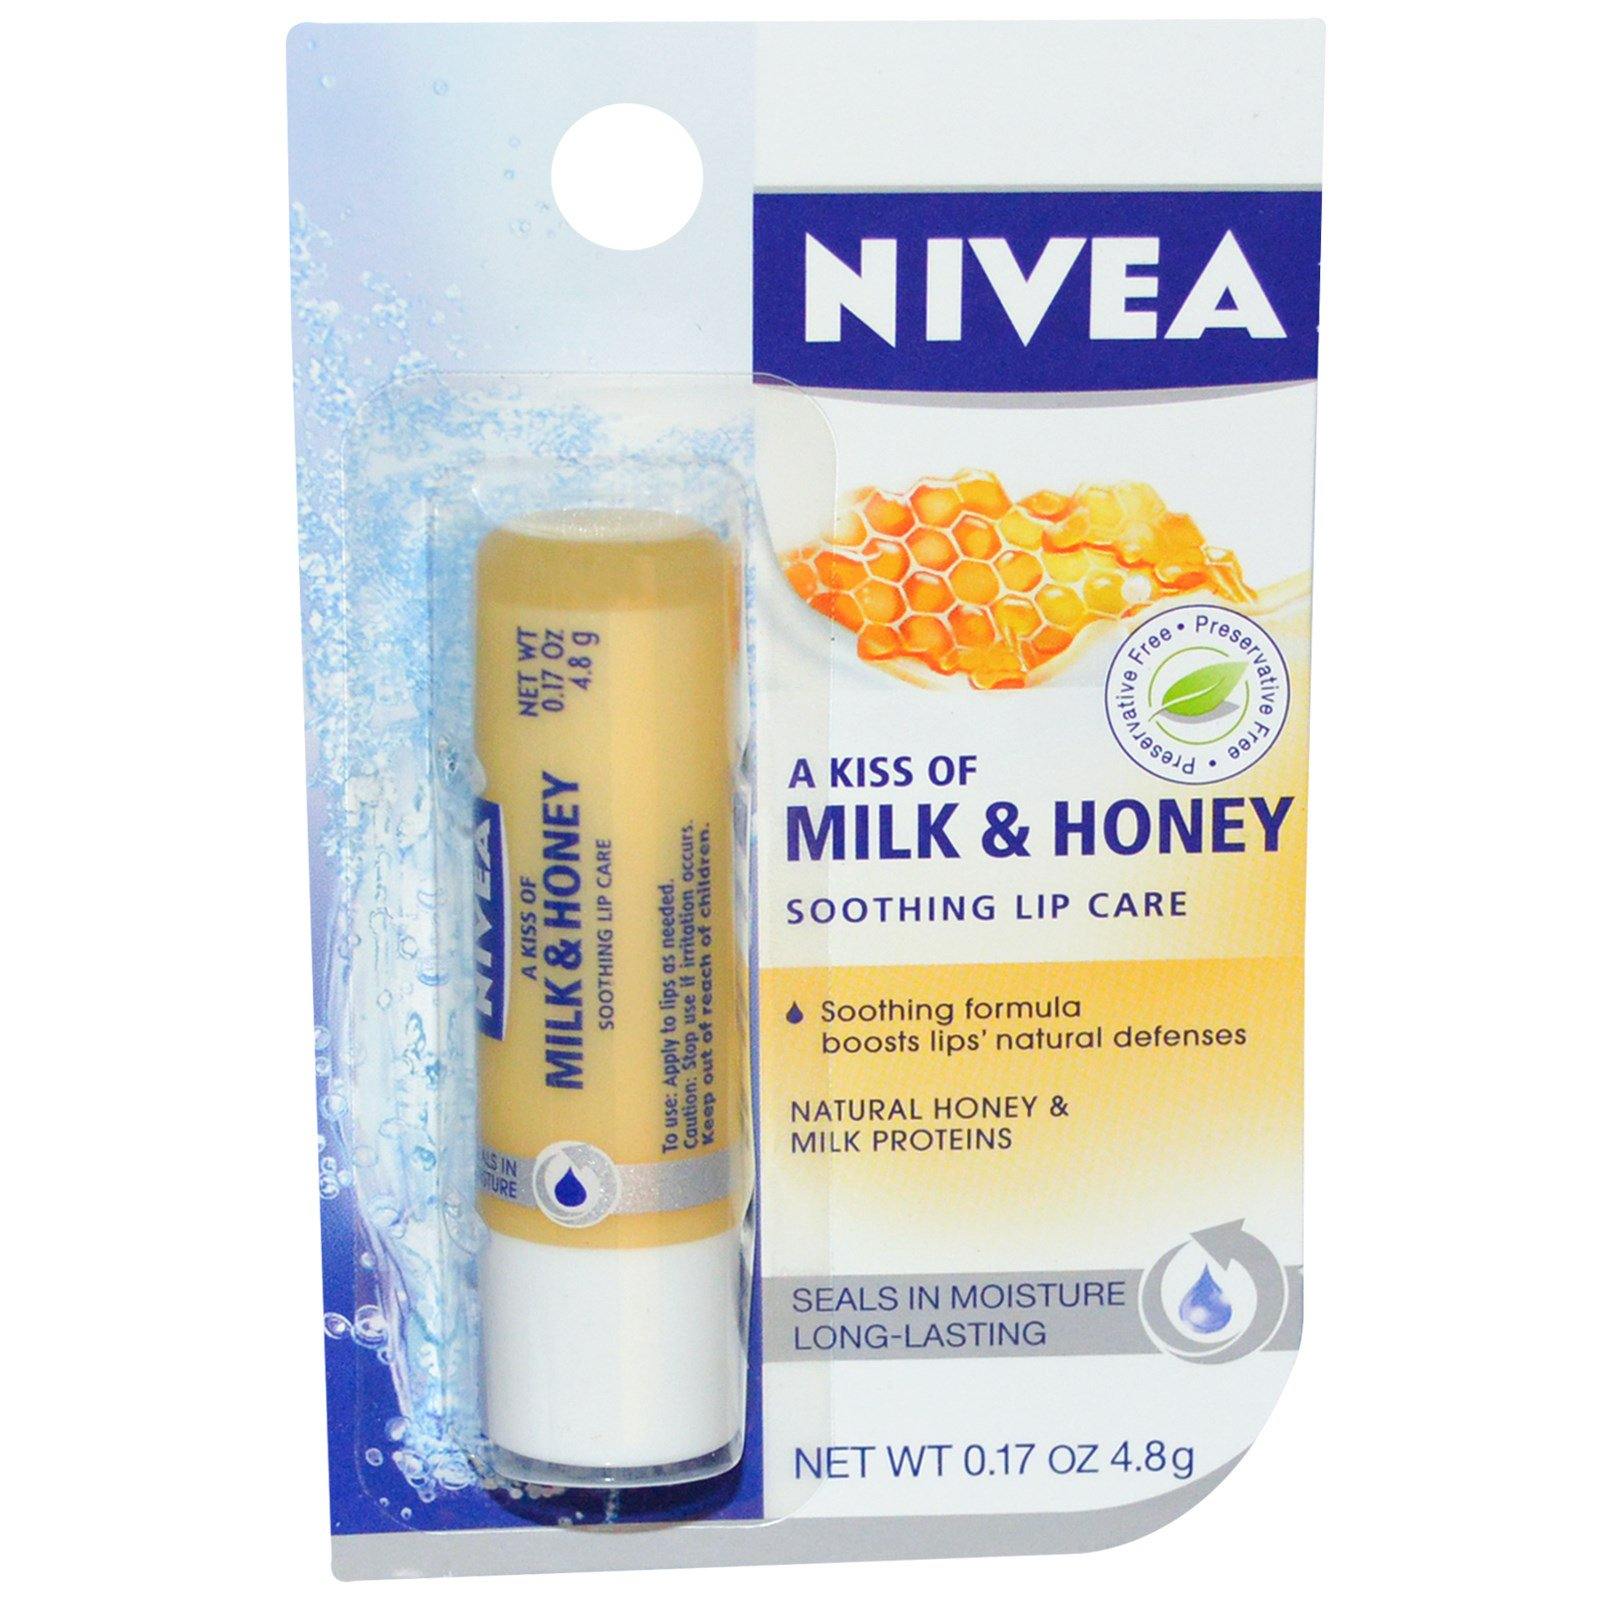 Nivea A Kiss Of Milk And Honey Soothing Lip Care - 0.17 Oz, 3 Pack Crazy Rumors Peppermint Twist Lip Balm, 0.15 oz.